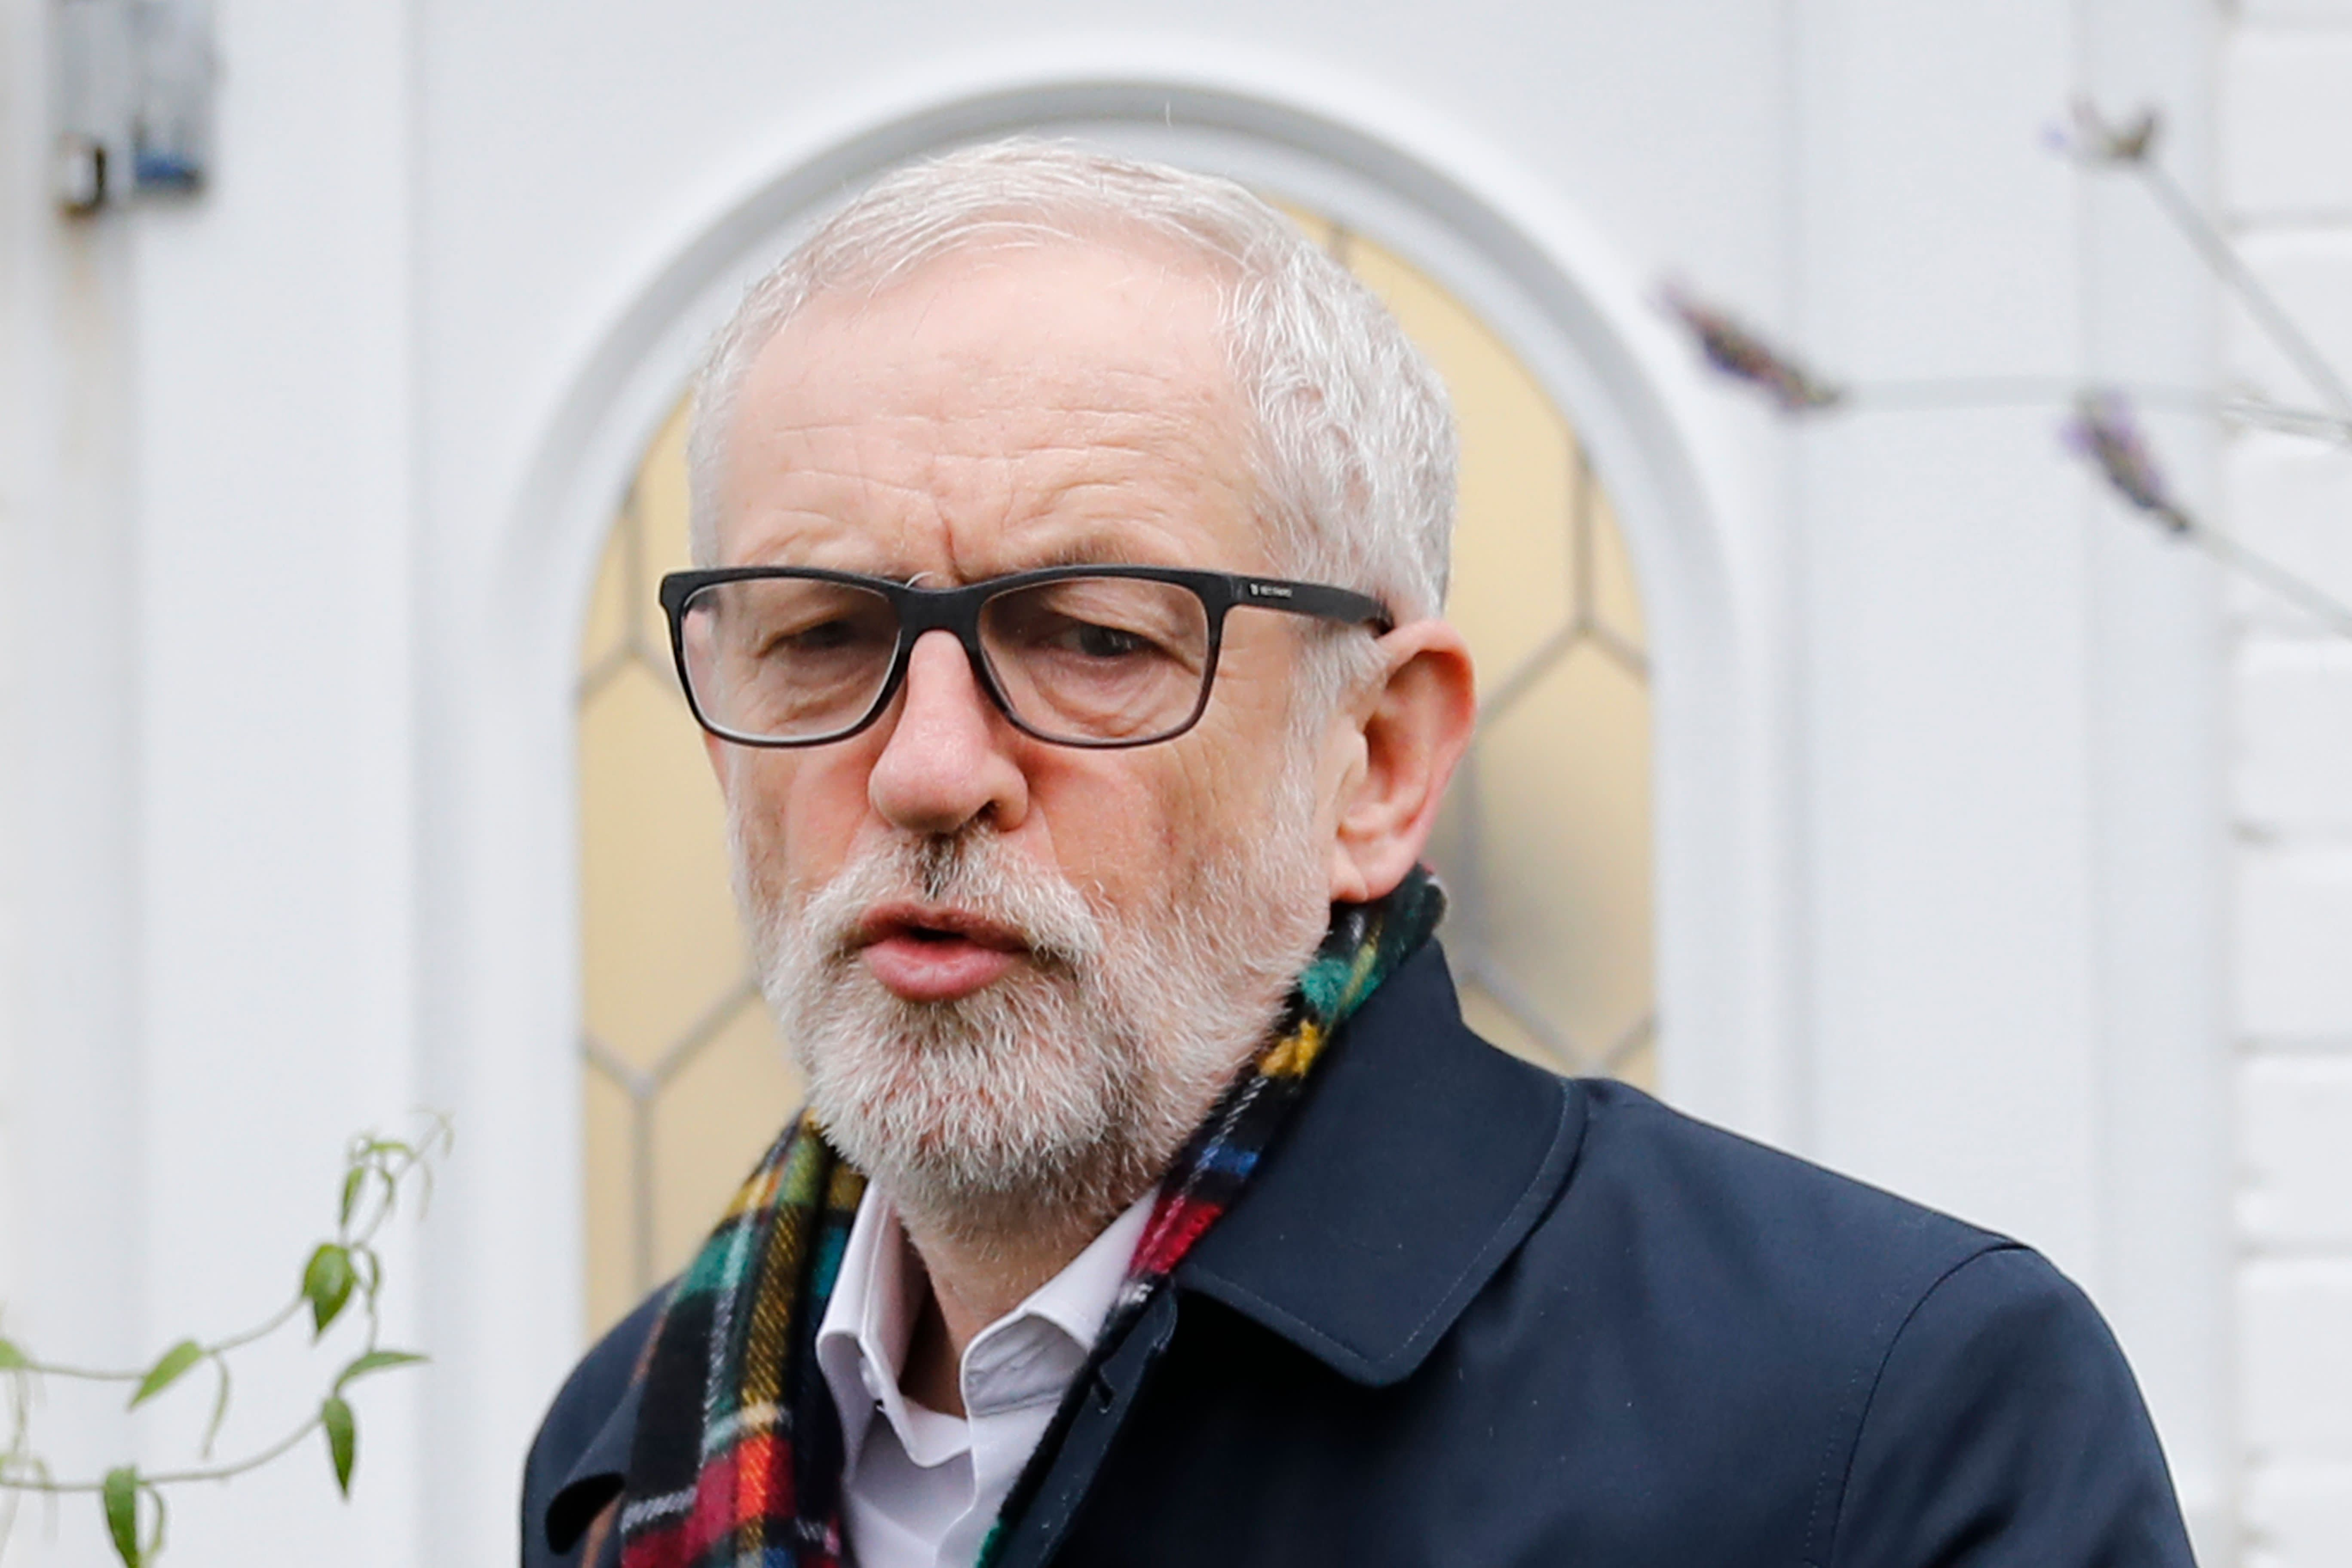 Britain's opposition Labour Party leader Jeremy Corbyn leaves his home in north London on December 17, 2019 for the first full day of the new parliament following the general election. - Corbyn will face Prime Minister Boris Johnson in the House of Commons today after Labour was handed its worst defeat in a general election since World war II, forcing the Labour leader to announce a plan for his departure. He also faces a potentially uncomfortable meeting with his own Labour colleagues later in the day. (Photo by Tolga AKMEN / AFP) (Photo by TOLGA AKMEN/AFP via Getty Images)